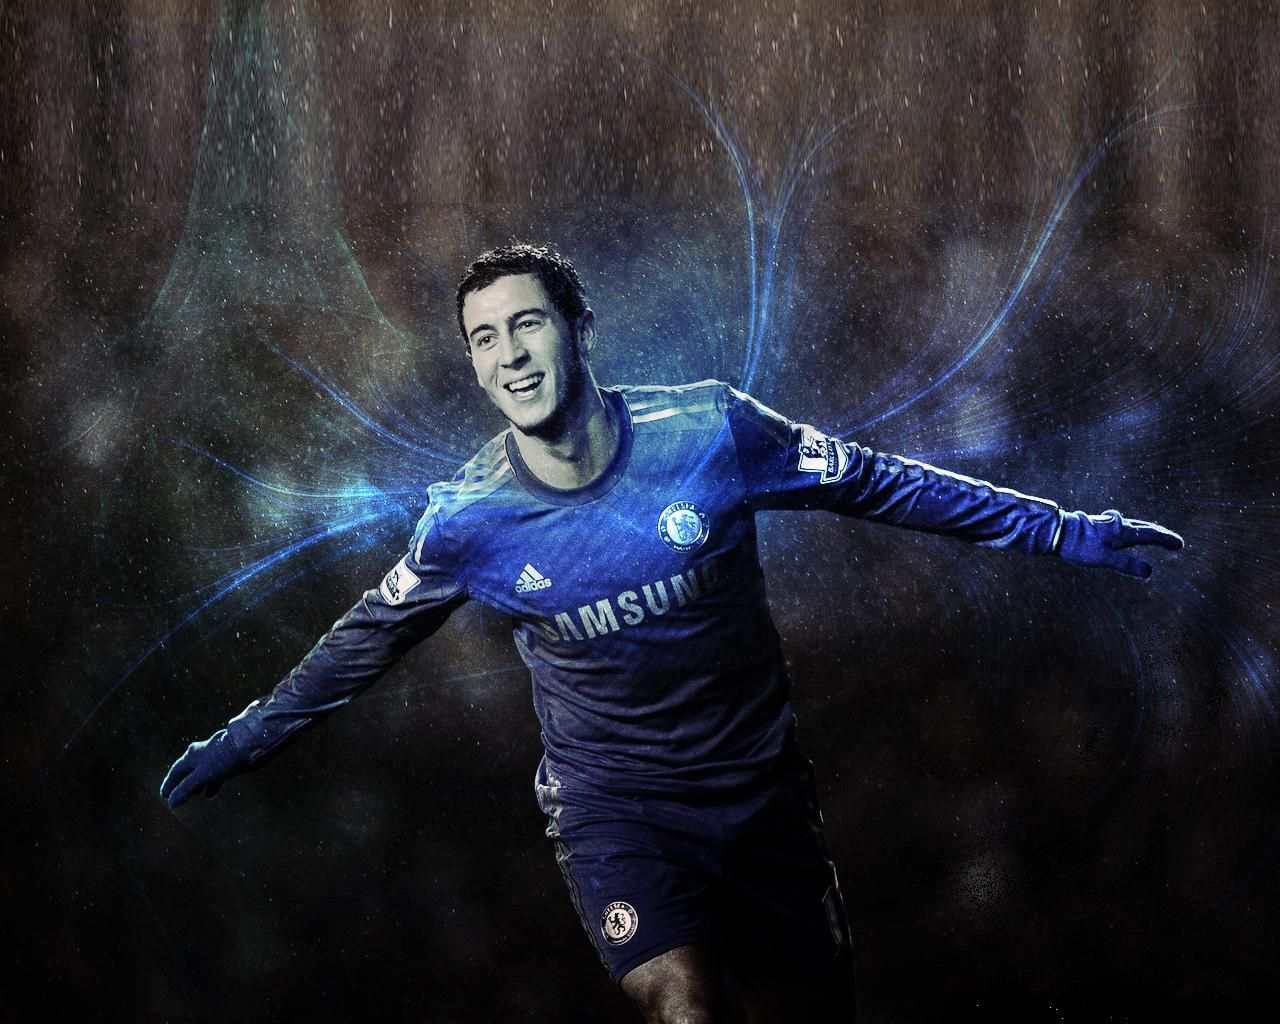 Eden hazard hd background wallpaper eden hazard wallpaper eden hazard hd background wallpaper voltagebd Image collections